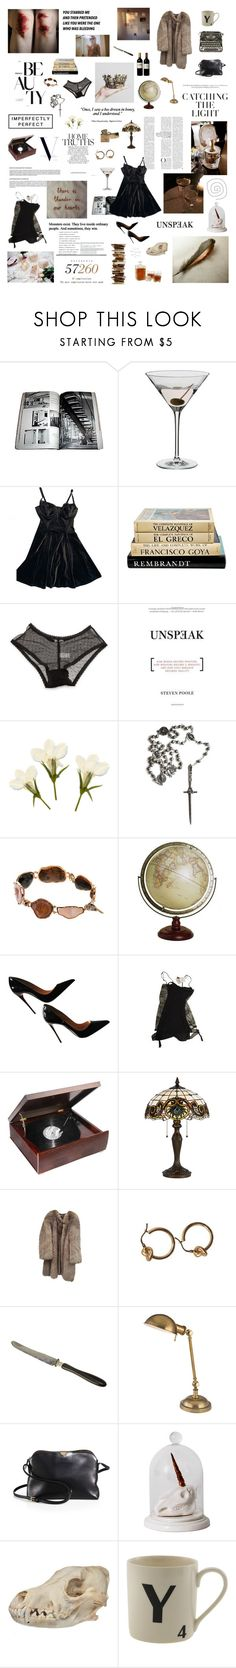 """""""I am late, late"""" by pryderus ❤ liked on Polyvore featuring GET LOST, Dartington Crystal, American Apparel, Ganni, Pamela Love, Kimberly McDonald, Christian Louboutin, La Perla, Cal Lighting and Fendi"""